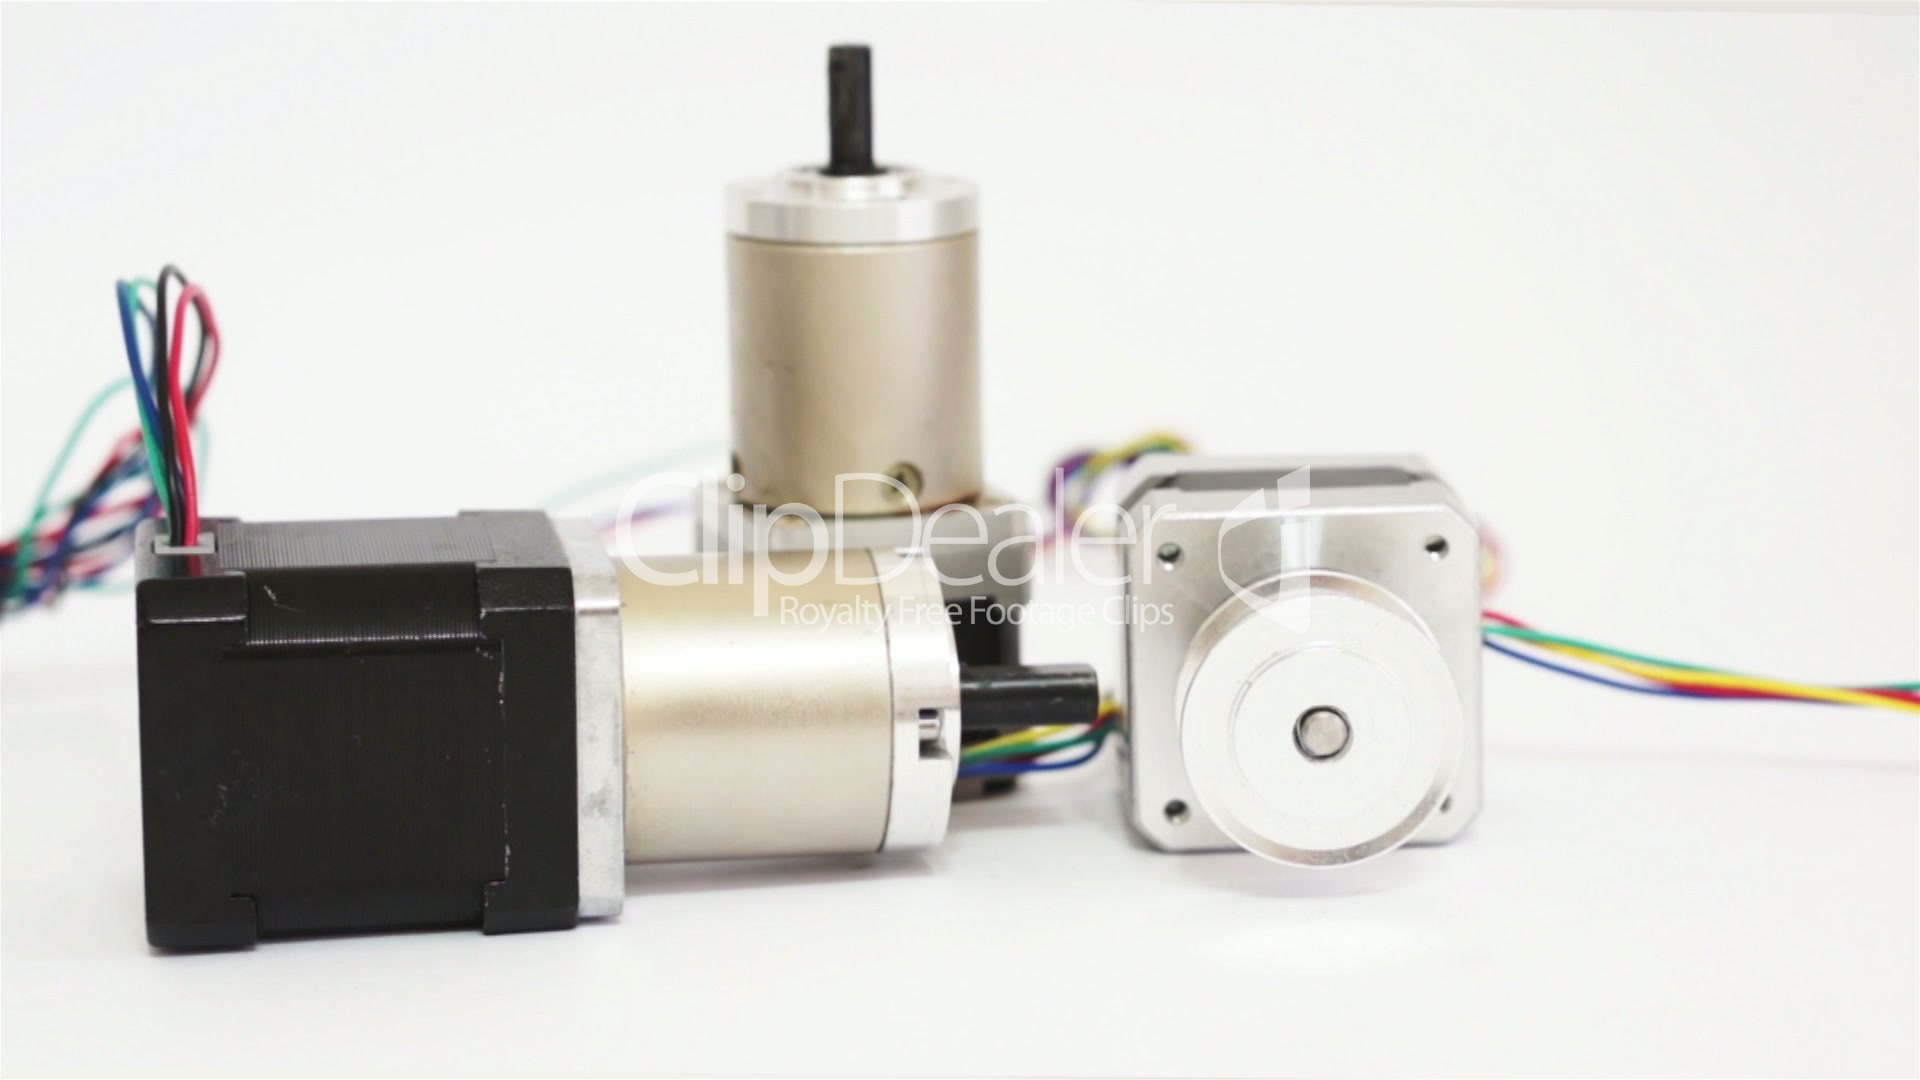 Industrial Three Stepper Motors Dolly Royalty Free Video And Stock Footage